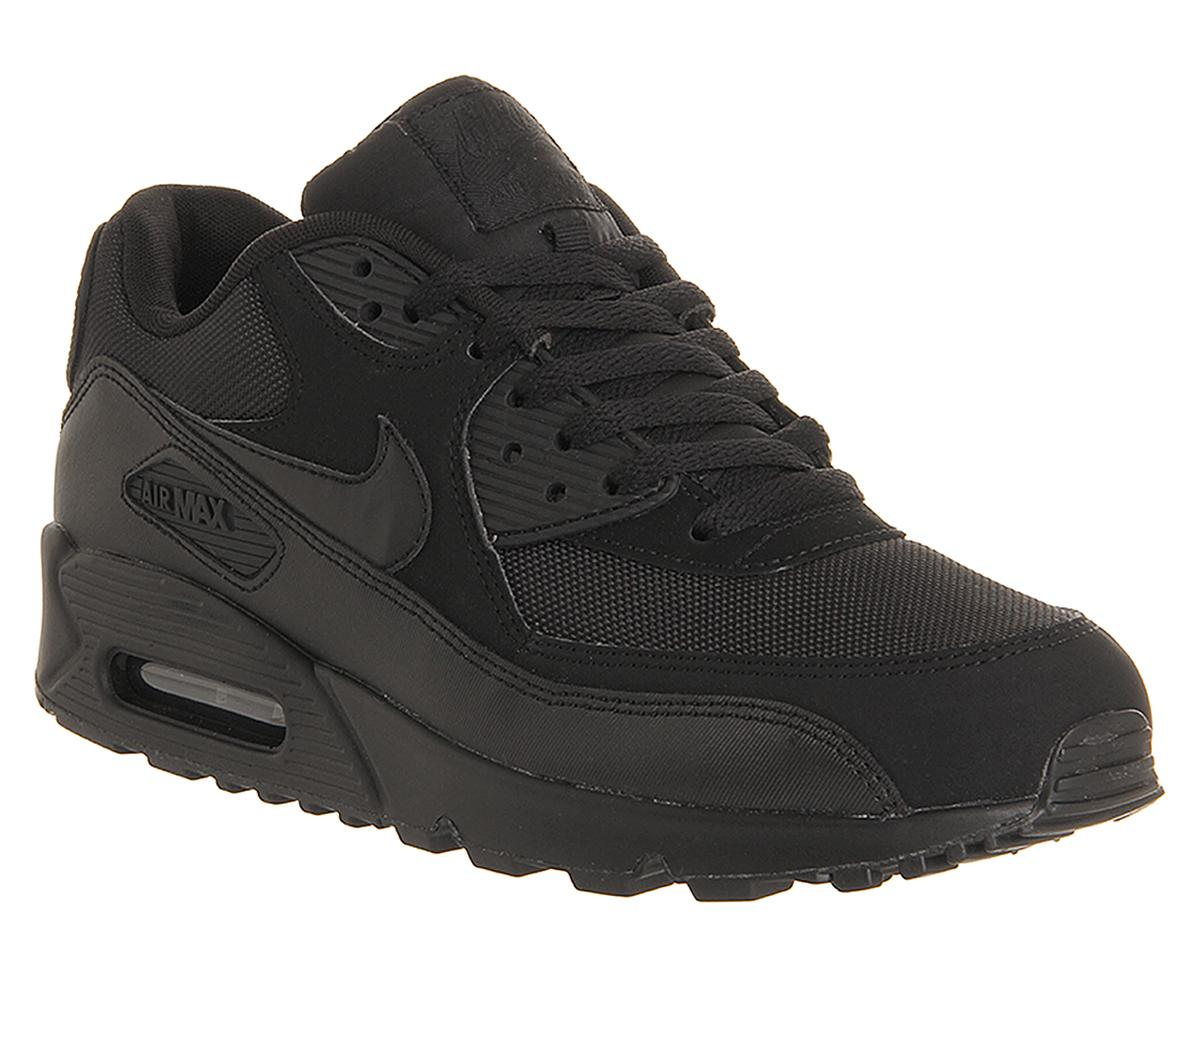 Nike air max 90's in Black Brand New